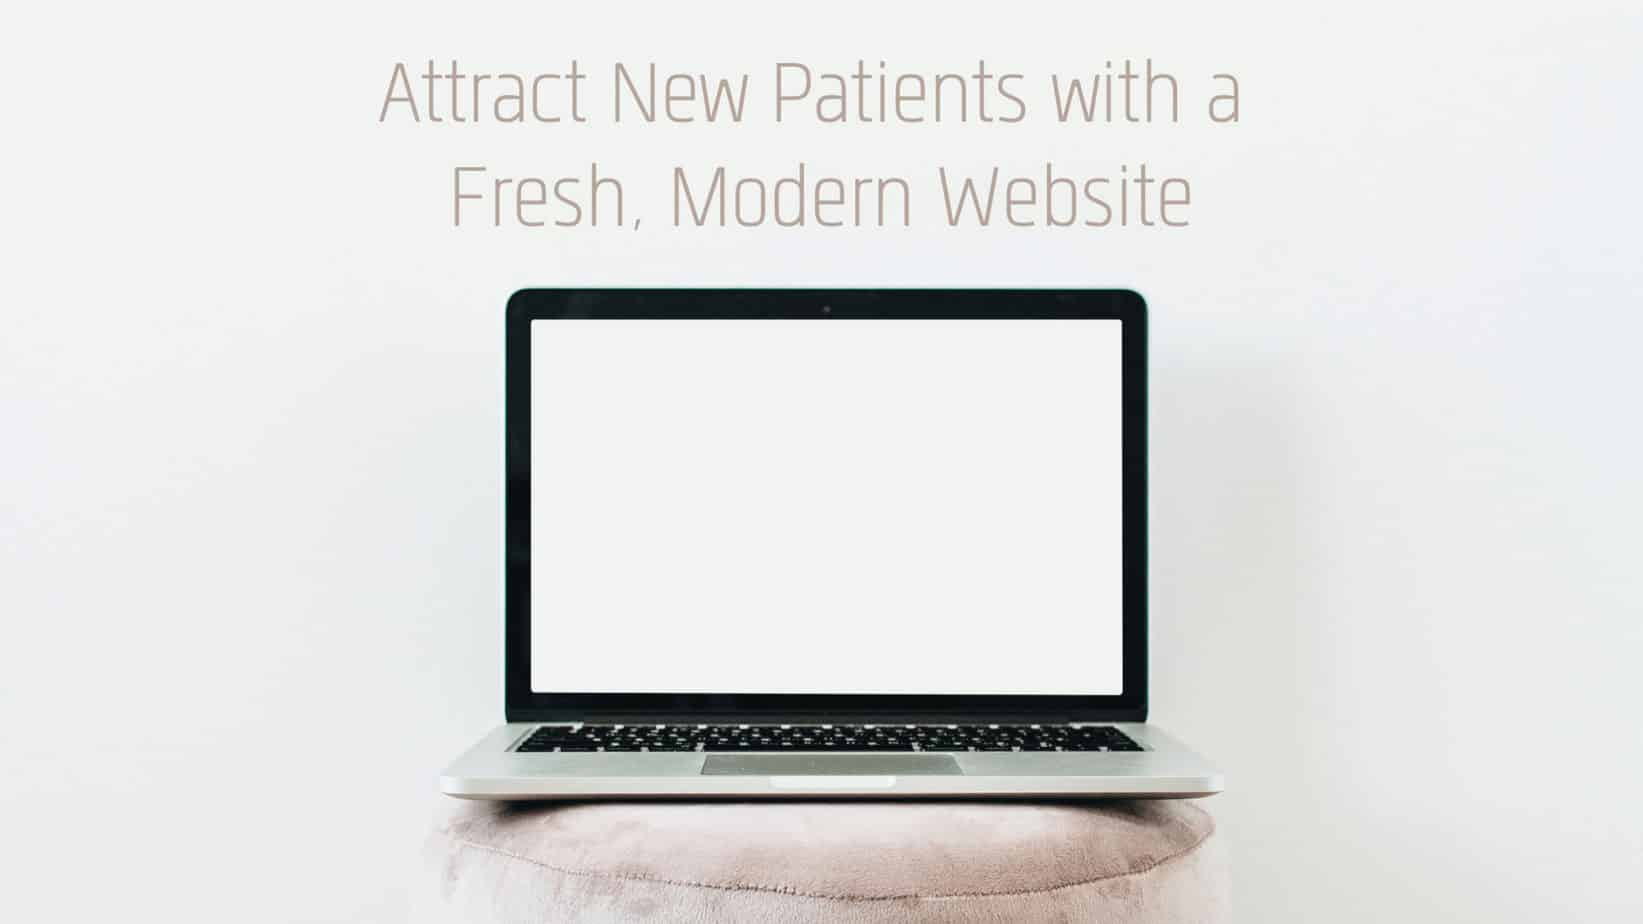 Attract New Patients with a Fresh, Modern Website